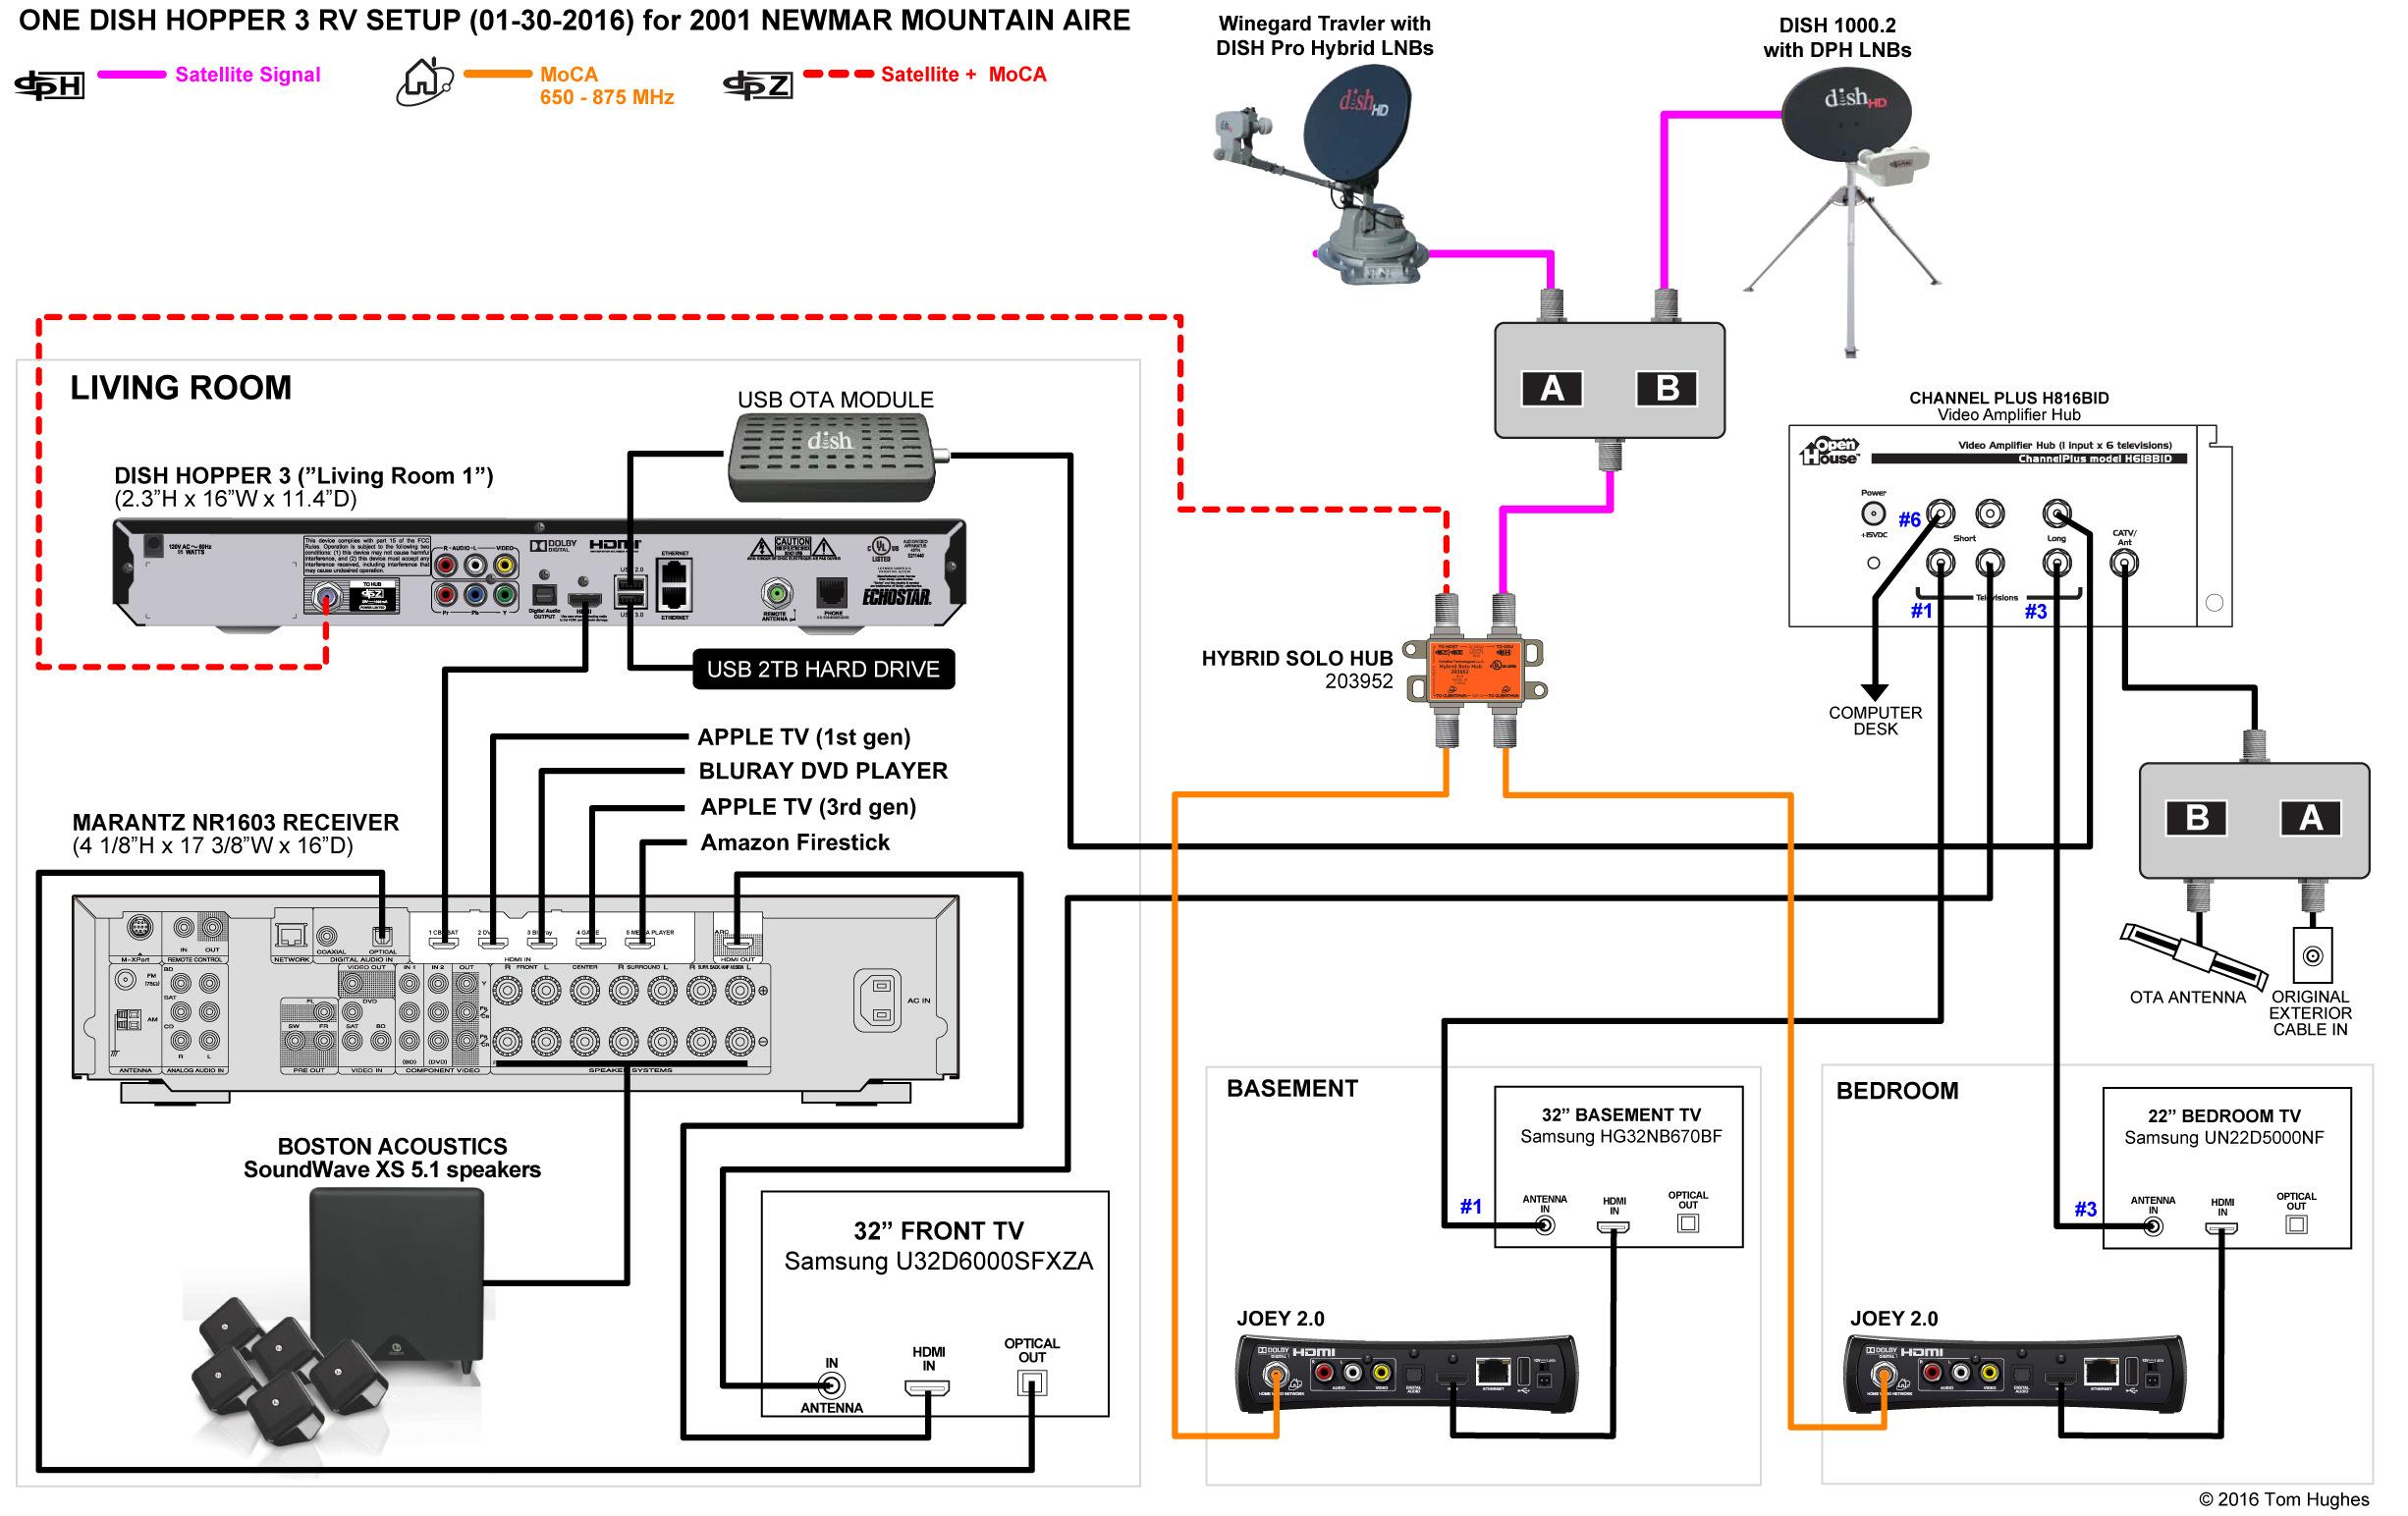 2001 madp new av setup_hopper_one_hopper3_01_30_2016_reva av system rvseniormoments samsung tv wiring diagram at readyjetset.co